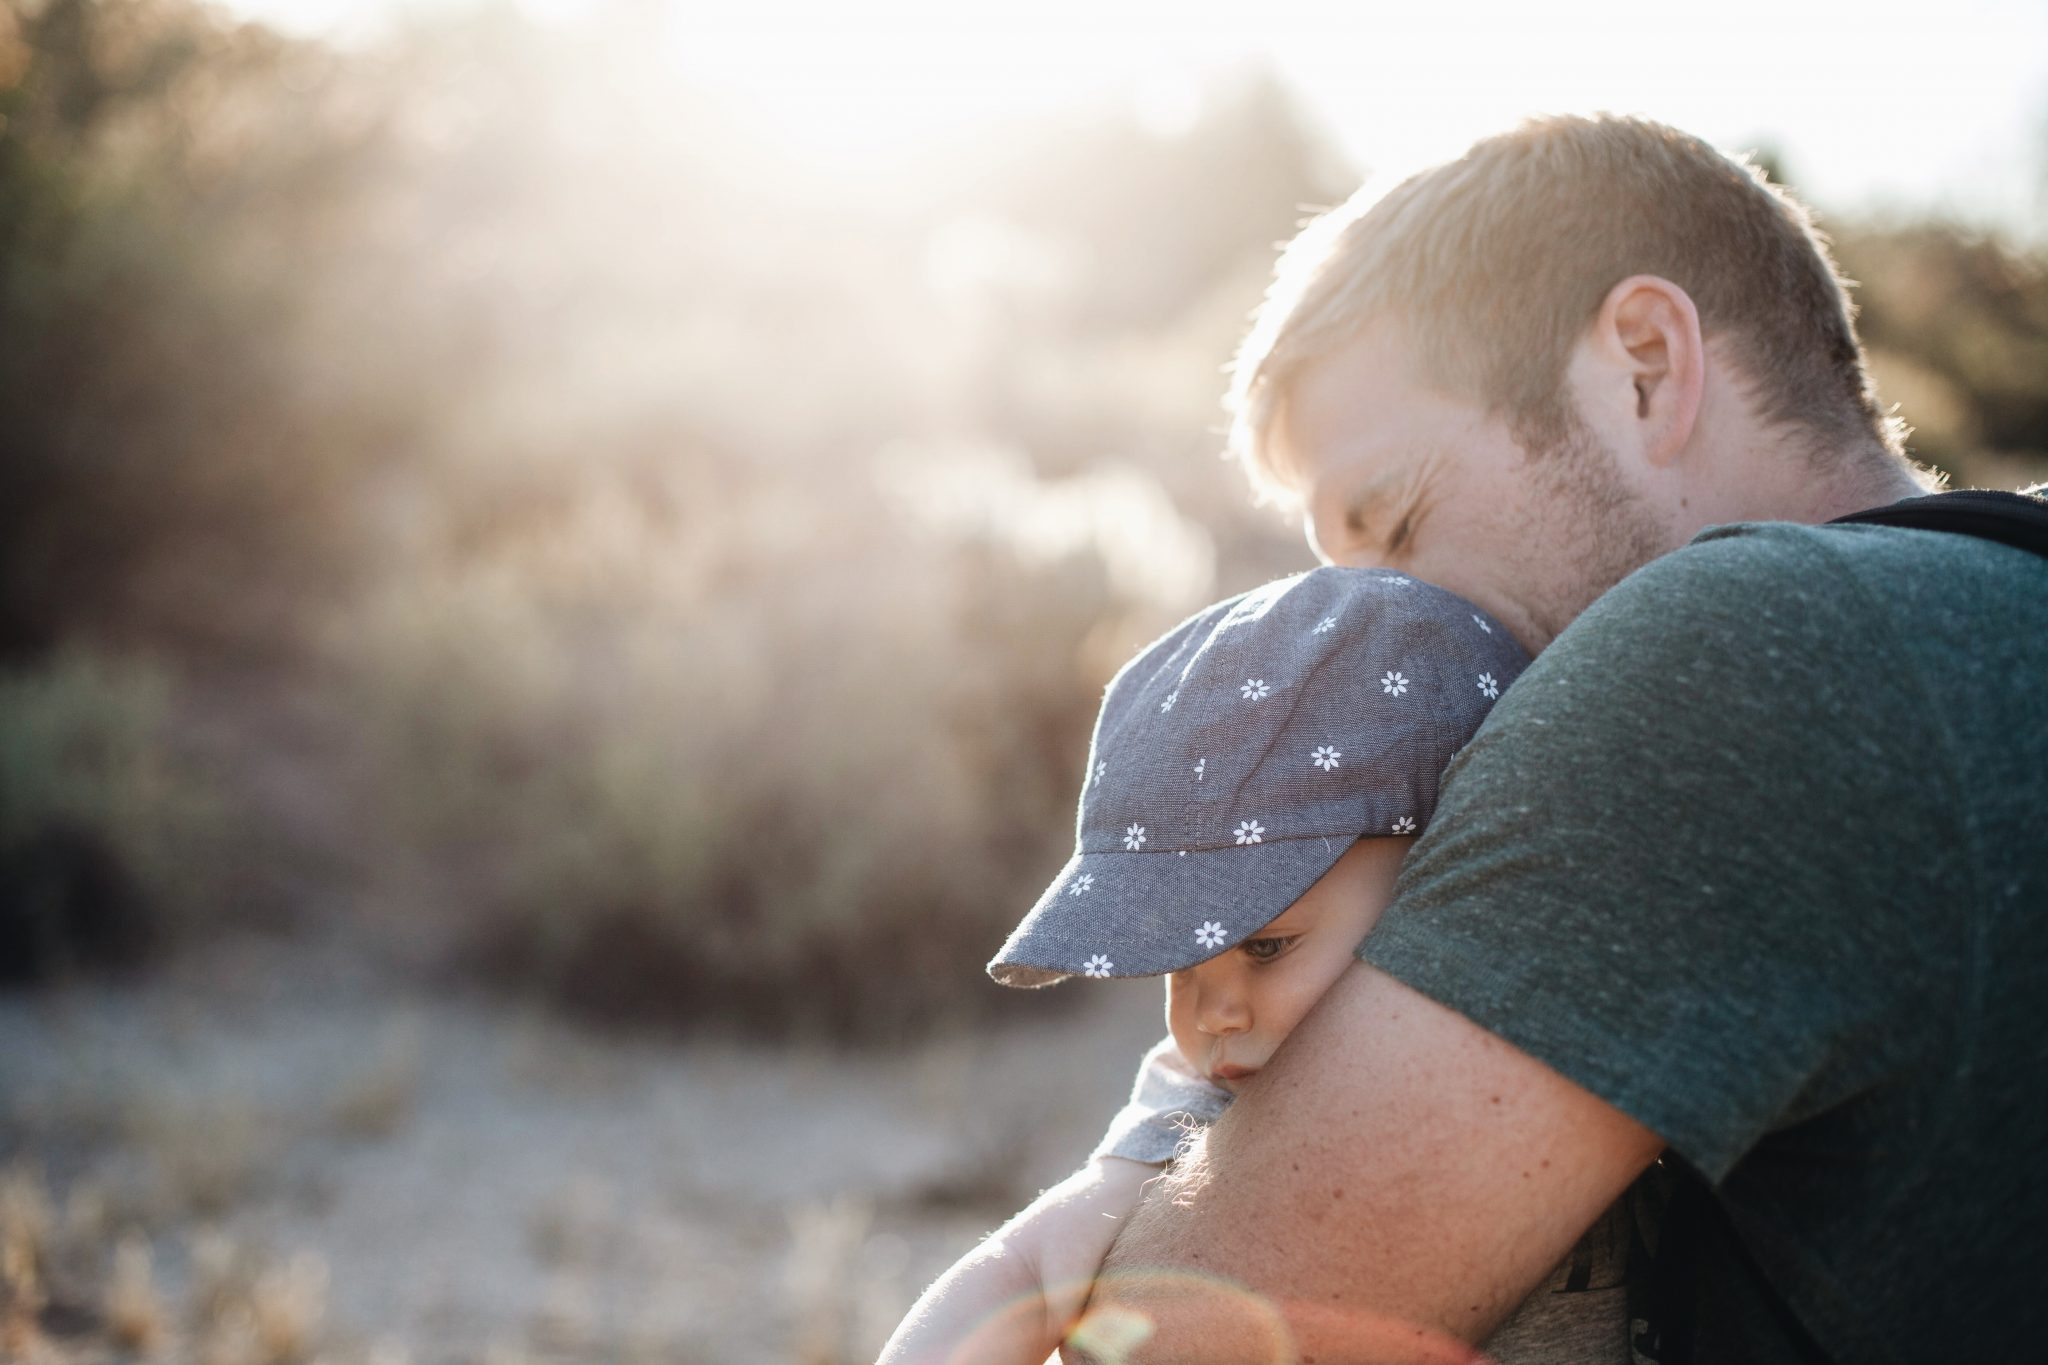 How would long-term paternity leave affect gender roles?